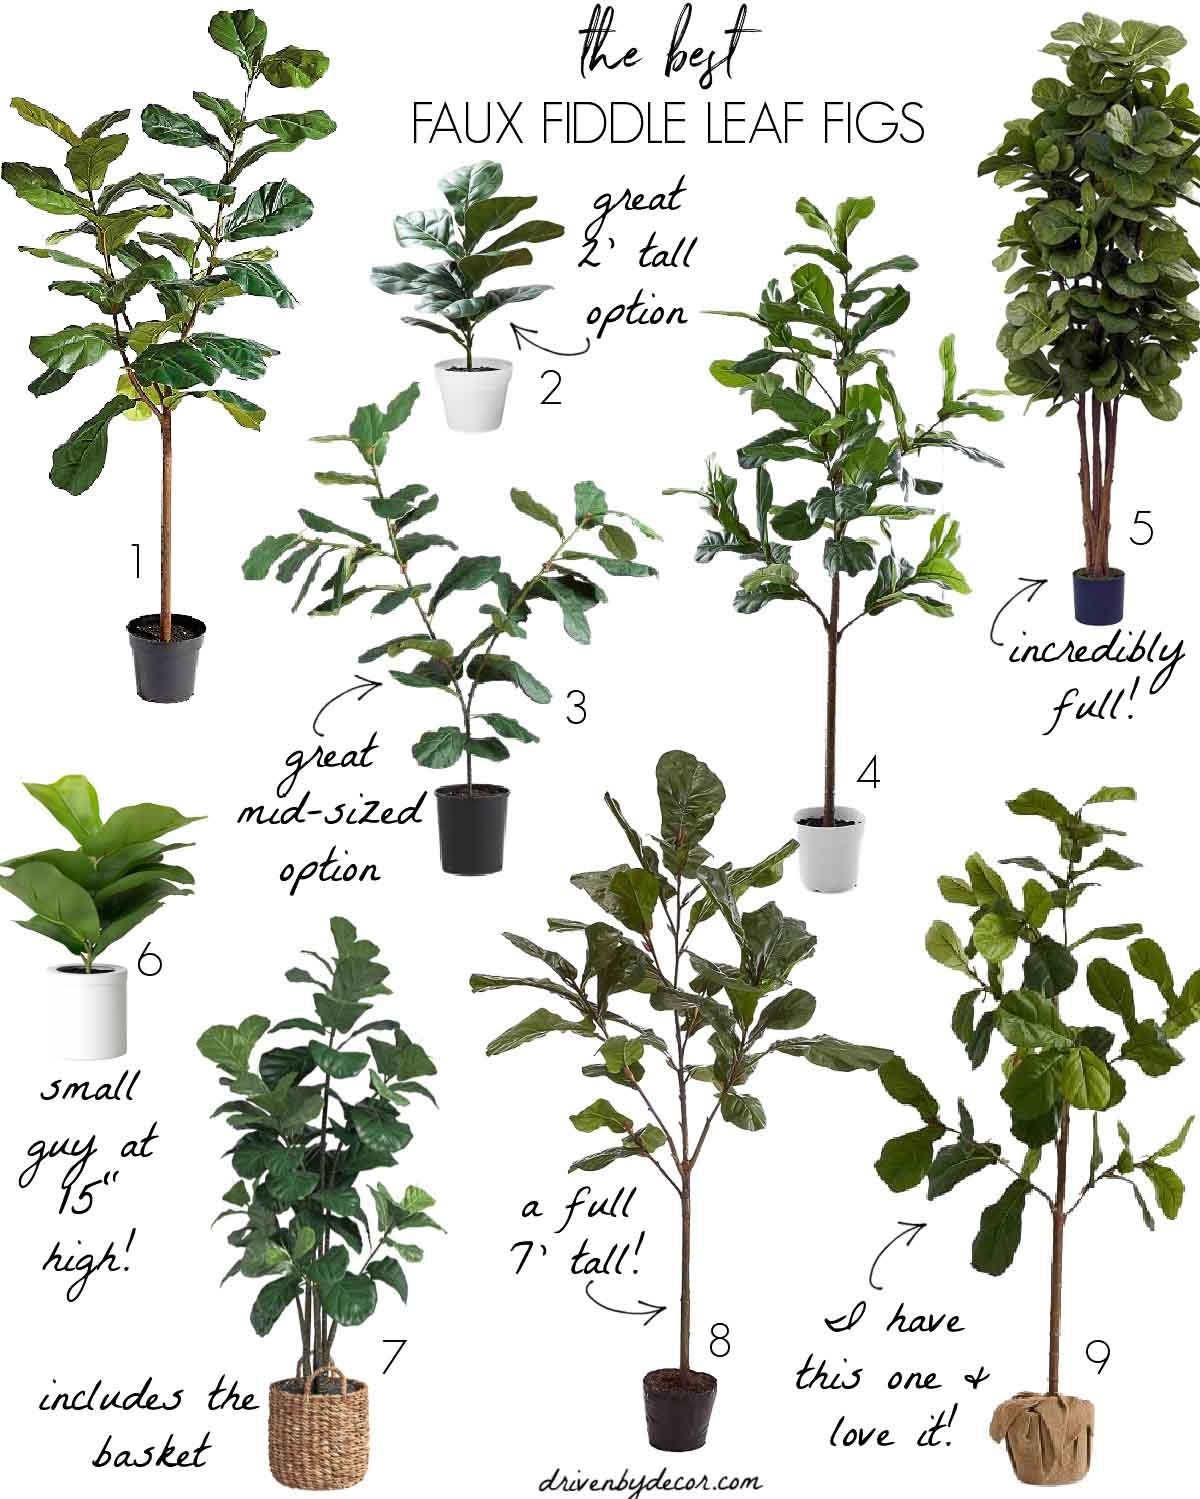 The best faux fiddle leaf fig trees!